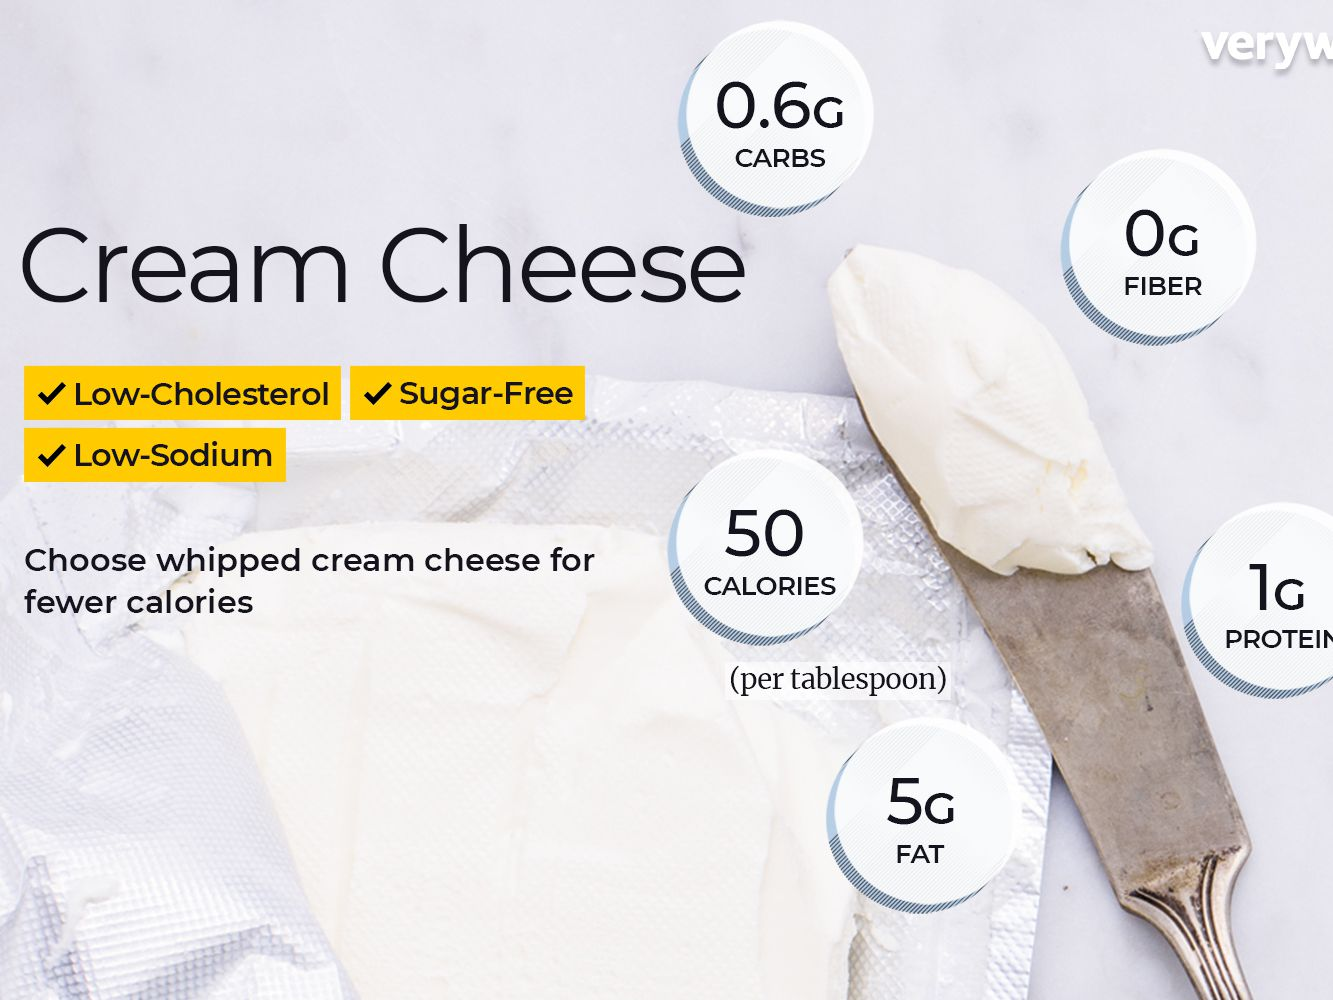 Swell Cream Cheese Nutrition Calories Carbs And Health Benefits Download Free Architecture Designs Scobabritishbridgeorg